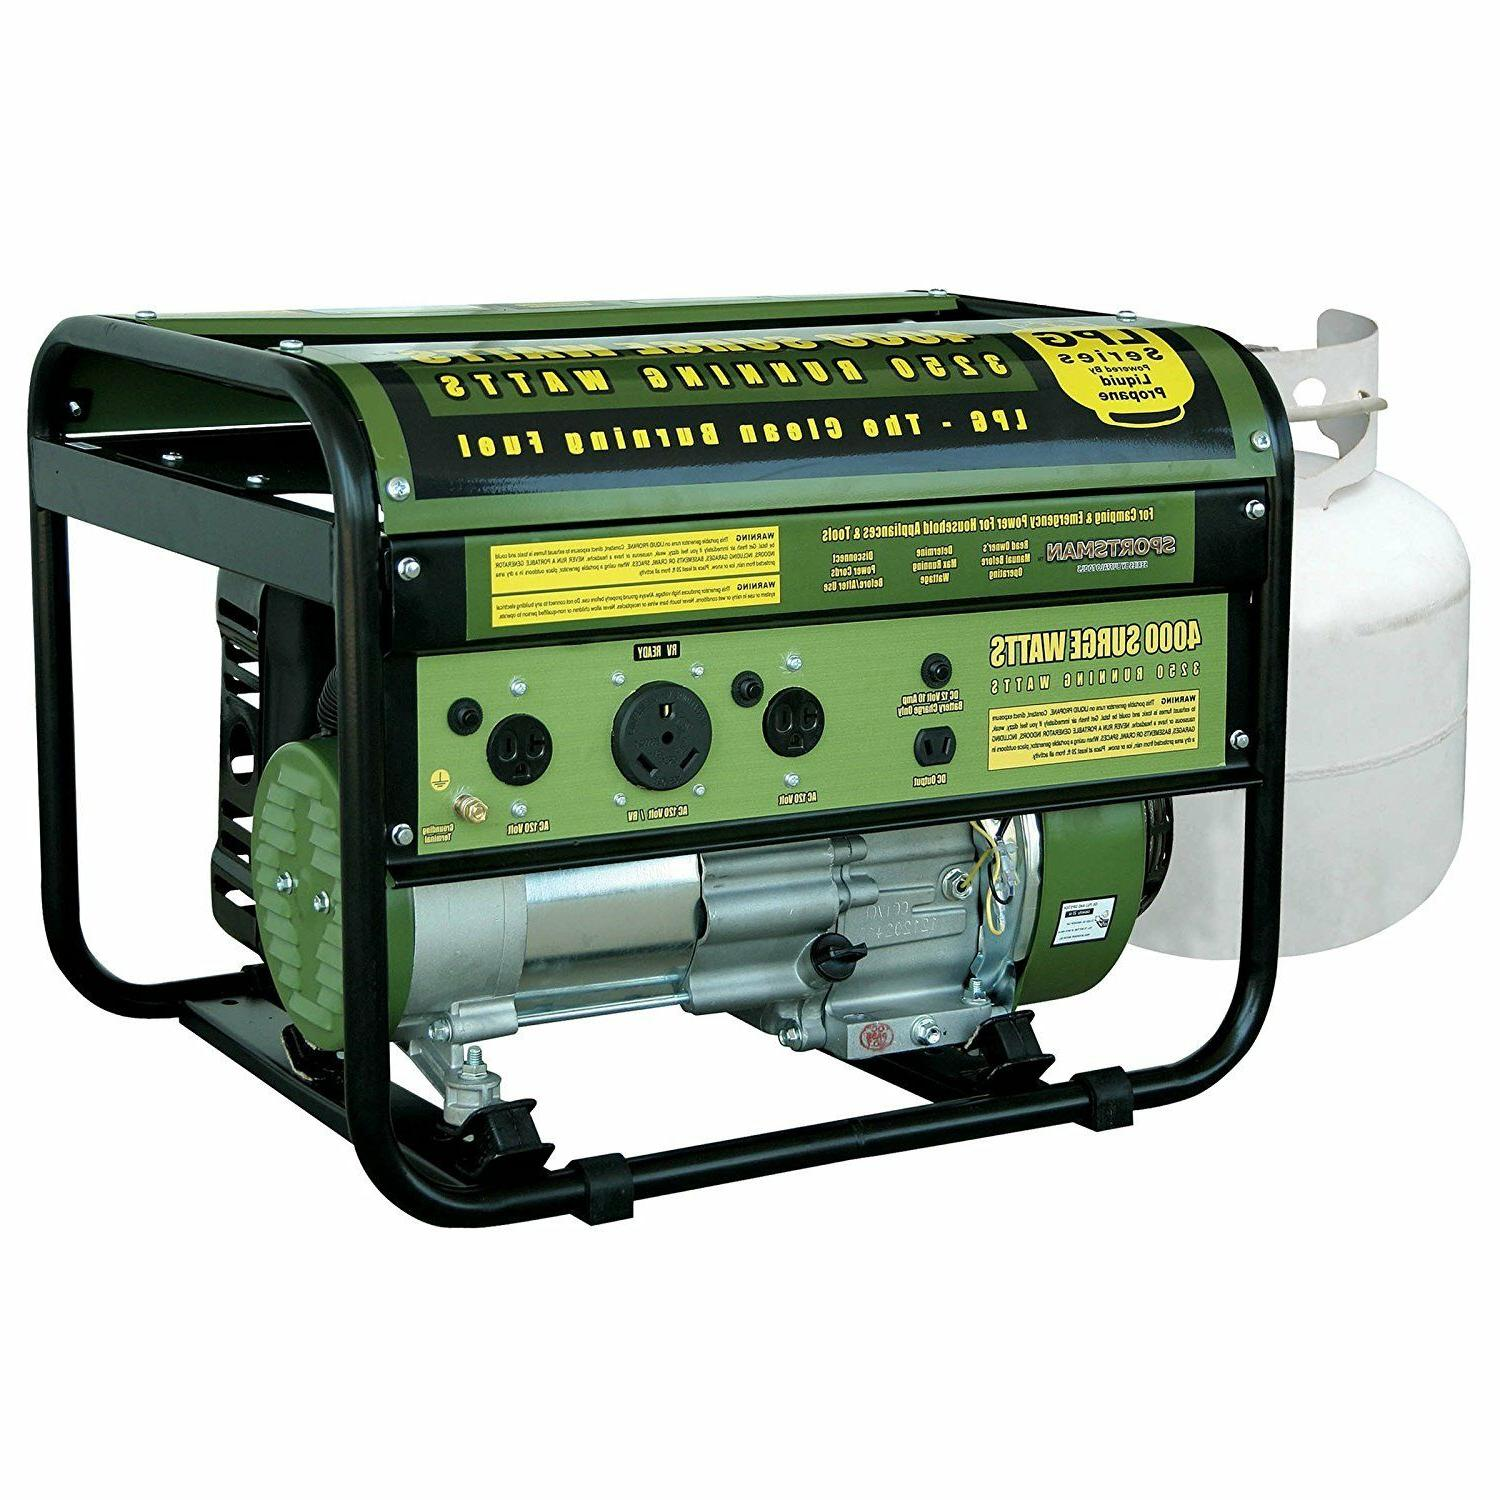 4000 watt portable quiet propane gas powered